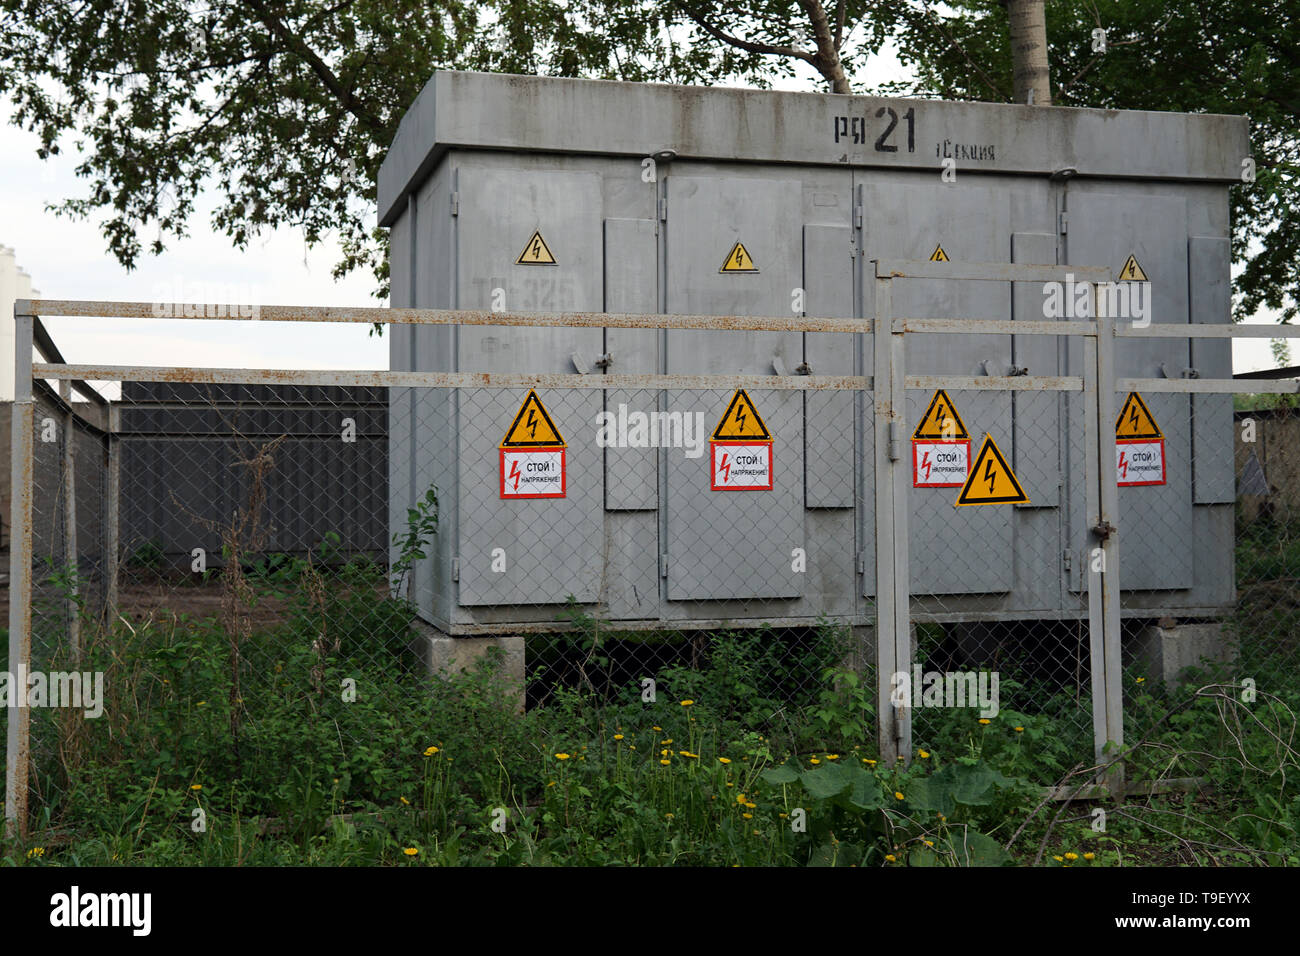 Outdoor electric power thansformer box with yellow hazard signs Stock Photo